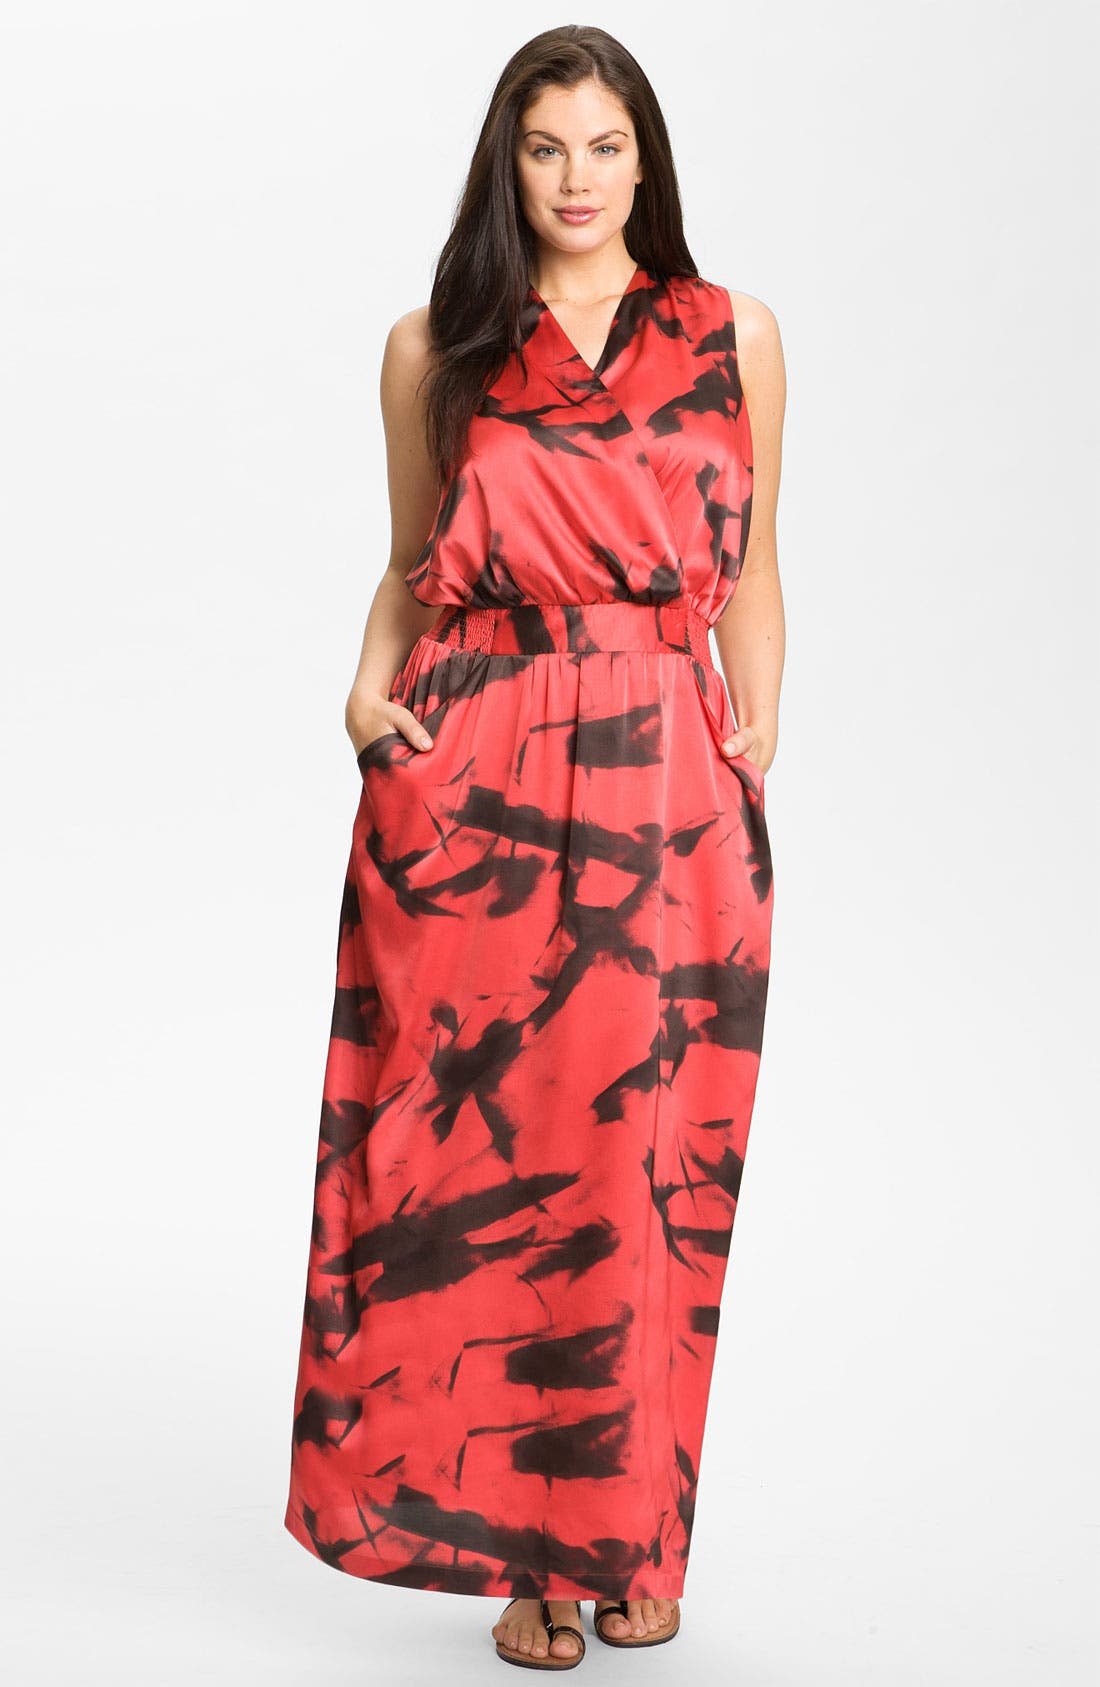 Alternate Image 1 Selected - Vince Camuto 'Paper Abstract' Sleeveless Maxi Dress (Plus)